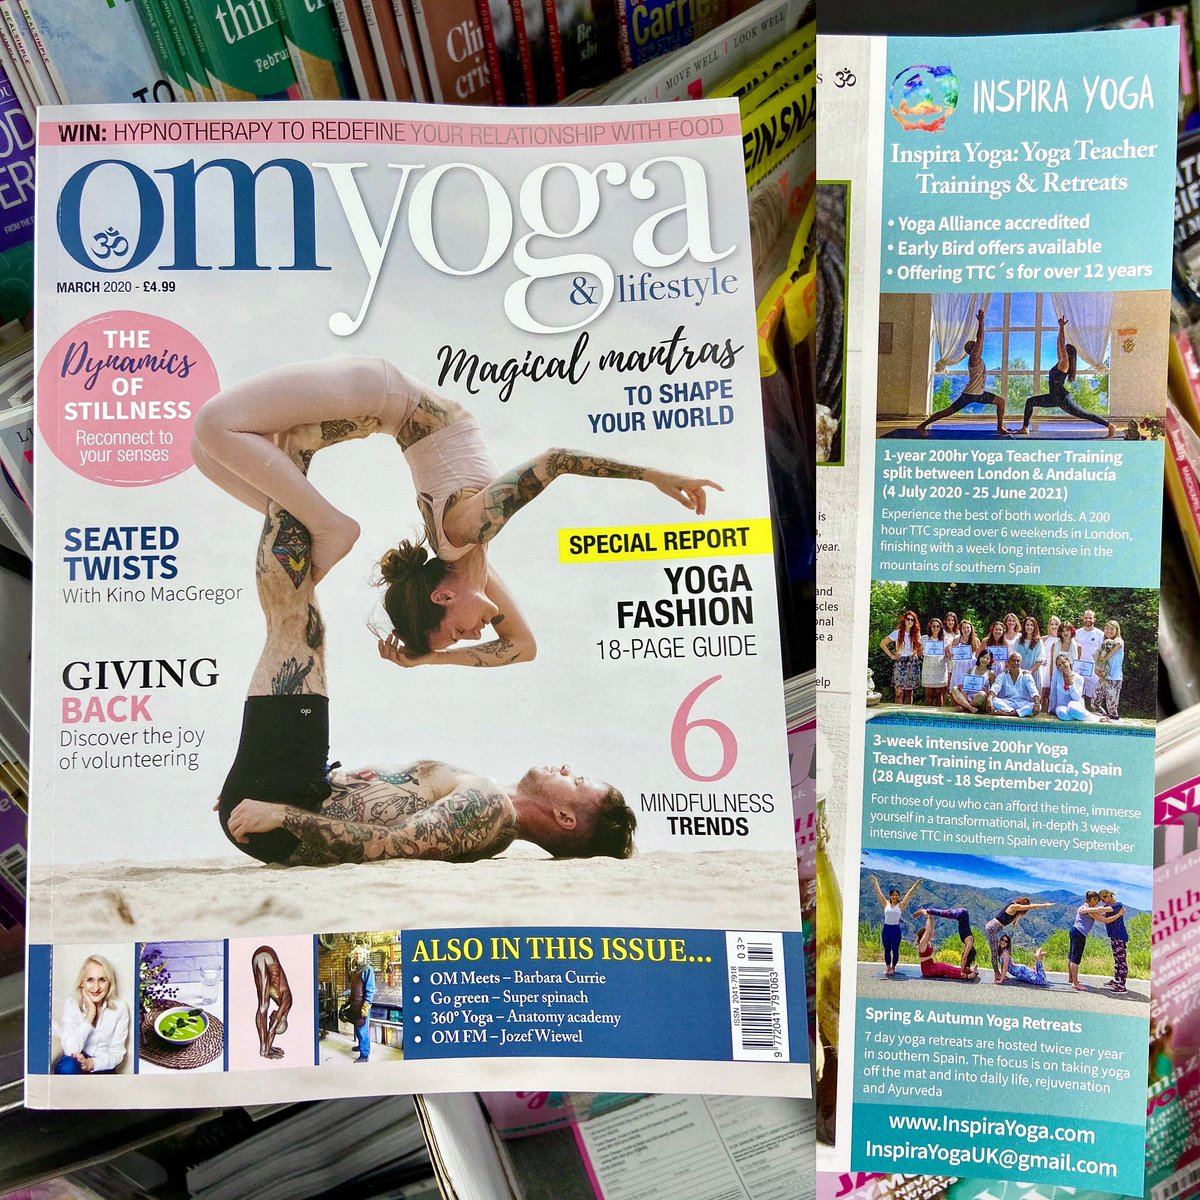 Check out our colourful advert in the March 2020 issue of @OmYogaMagazine, highlighting our upcoming 1-year (July 2020 - June 2021) and 3-week (September 2020) 200hr #YogaTeacherTraining and our Ashtanga #YogaRetreat in May 2020! ☺️🧘🏻♀️   #omyogamagazine #inspirayoga #inspirayogauk https://t.co/q6TYcZ0KbC